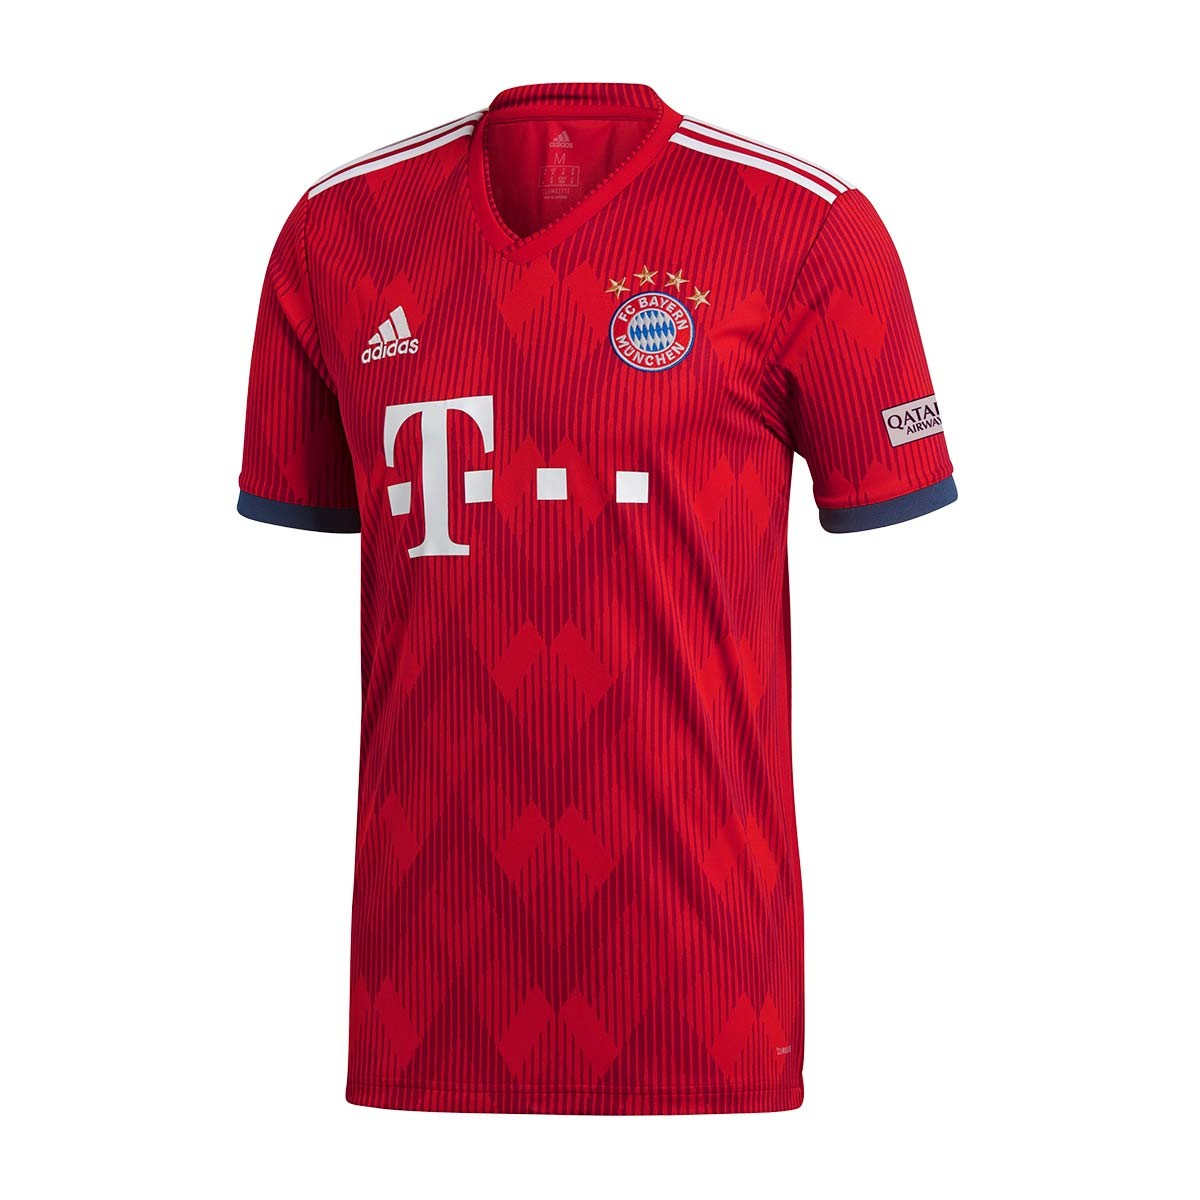 7b2cac6fe3a8 Camiseta FC Bayern Munich Primera Equipación 2018-2019 True red-Strong  red-White